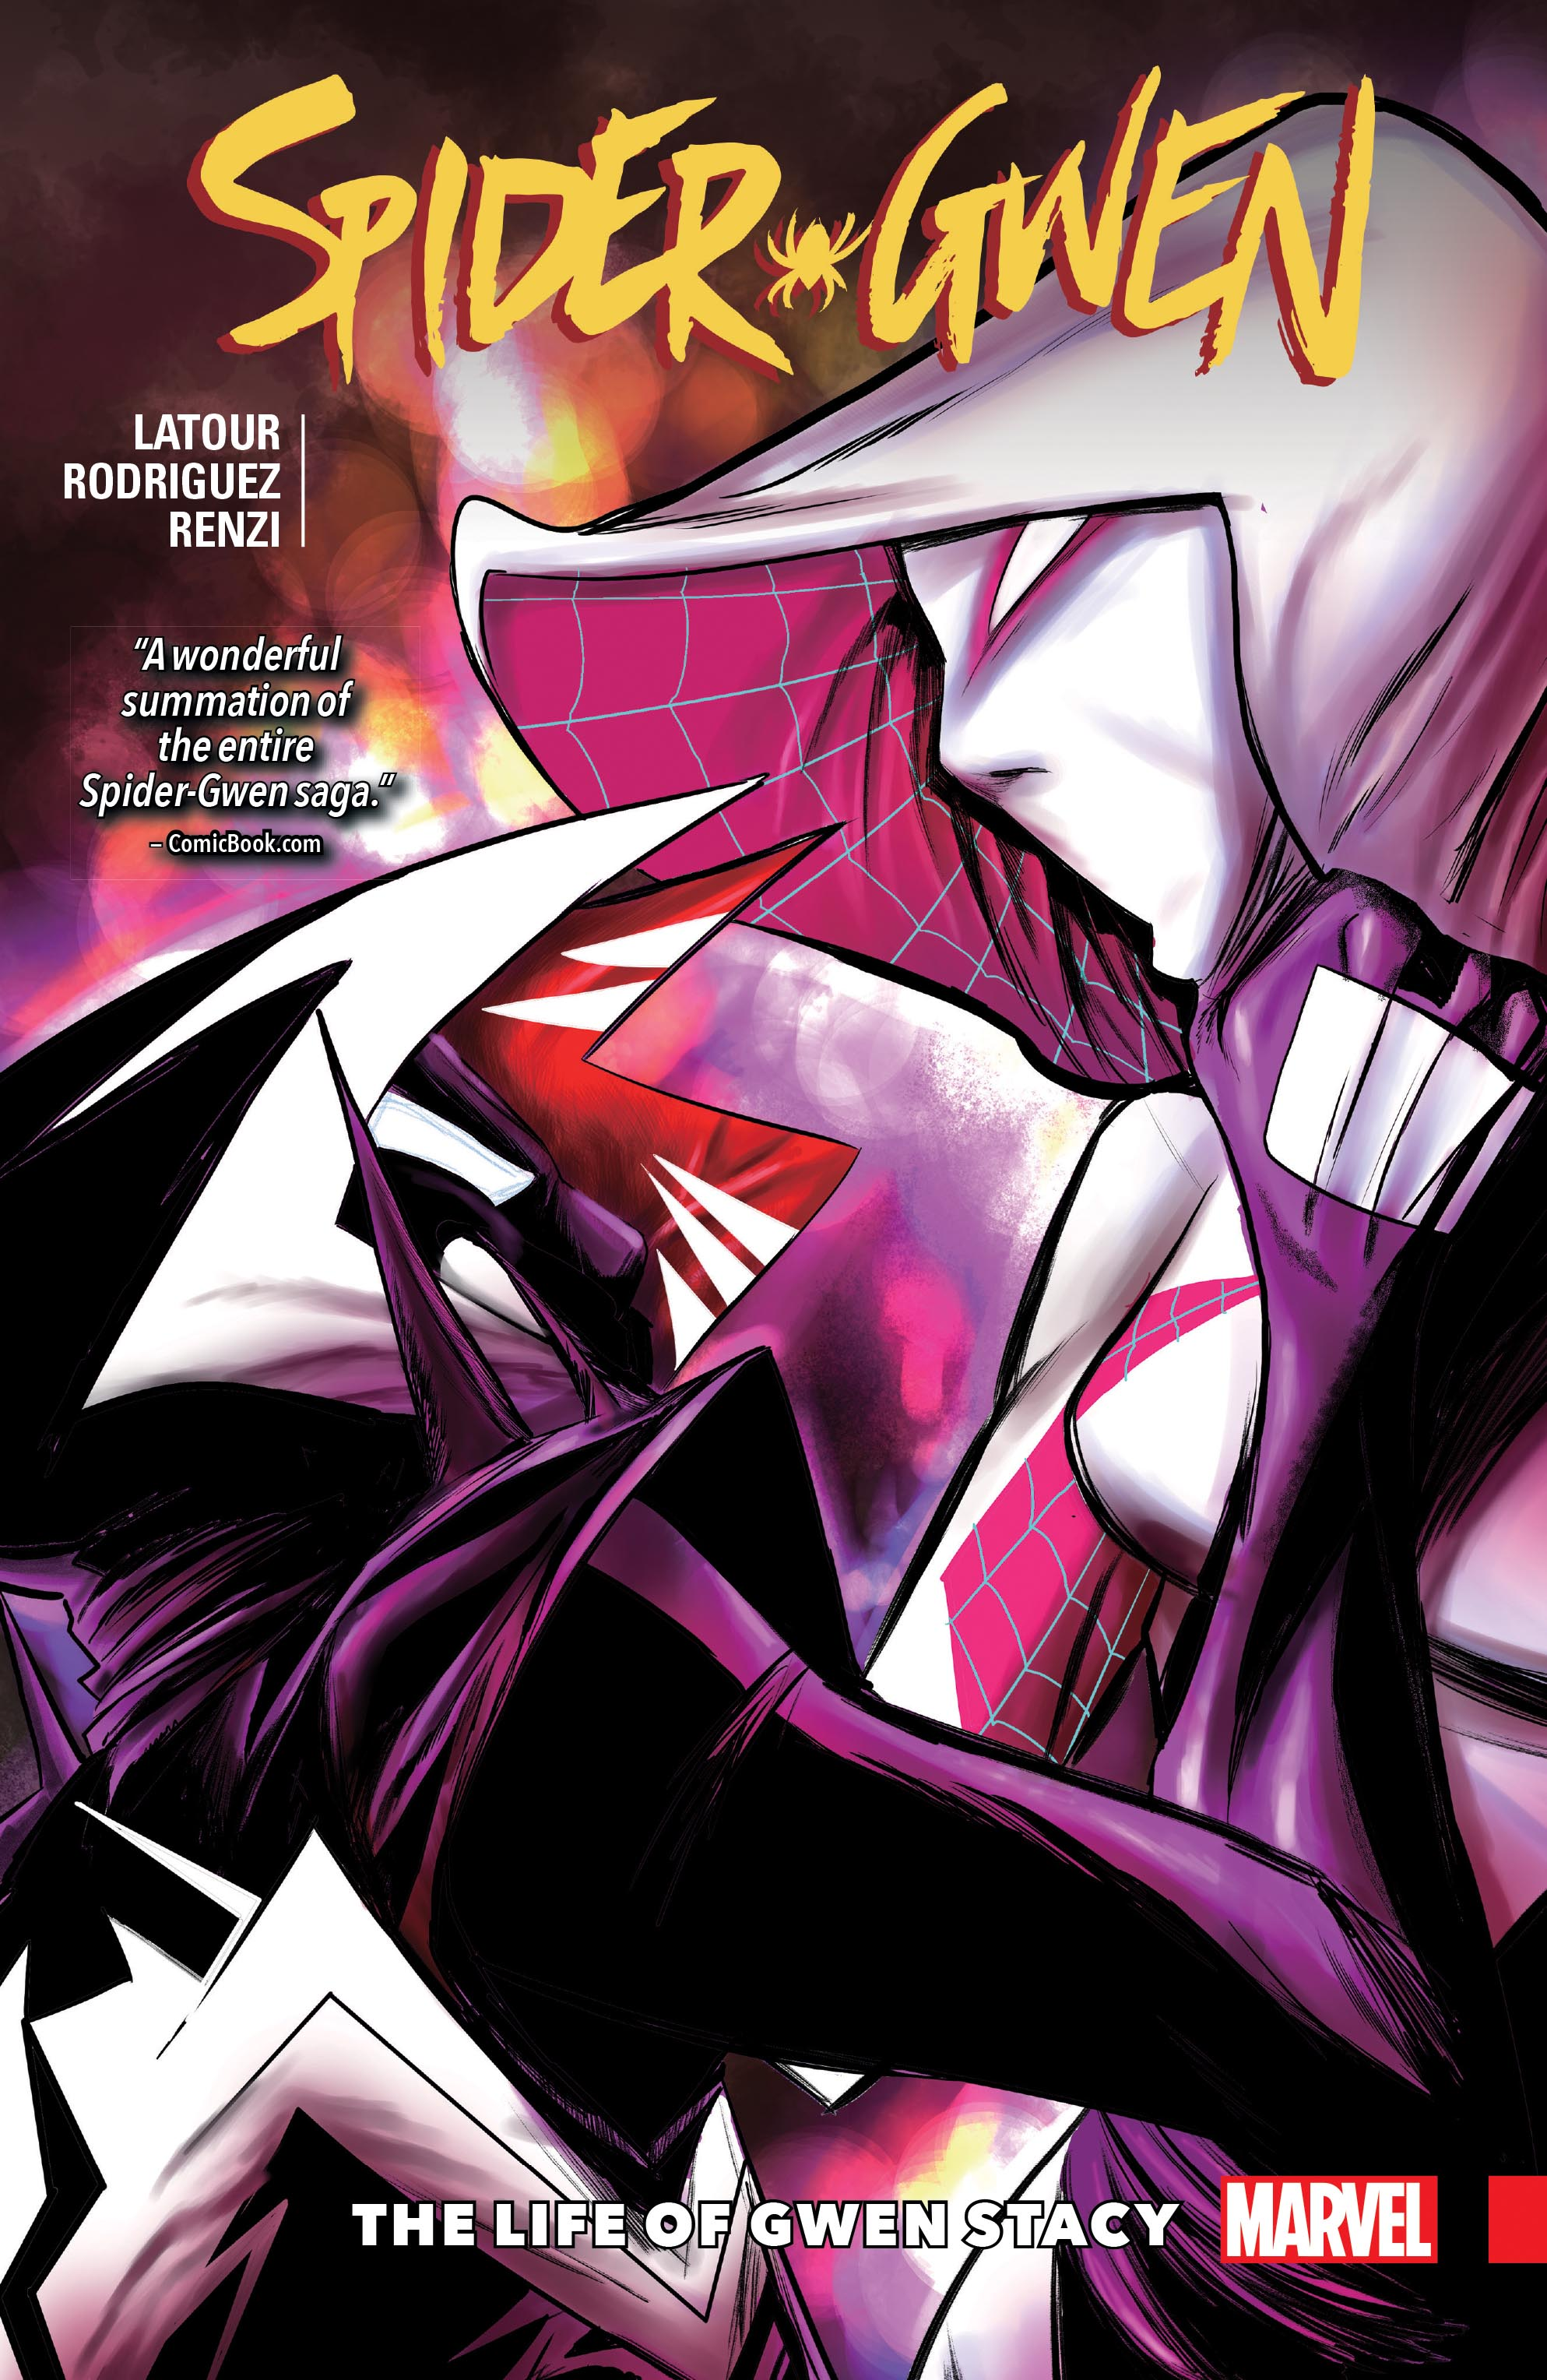 Spider-Gwen Vol. 6: The Life of Gwen Stacy (Trade Paperback)